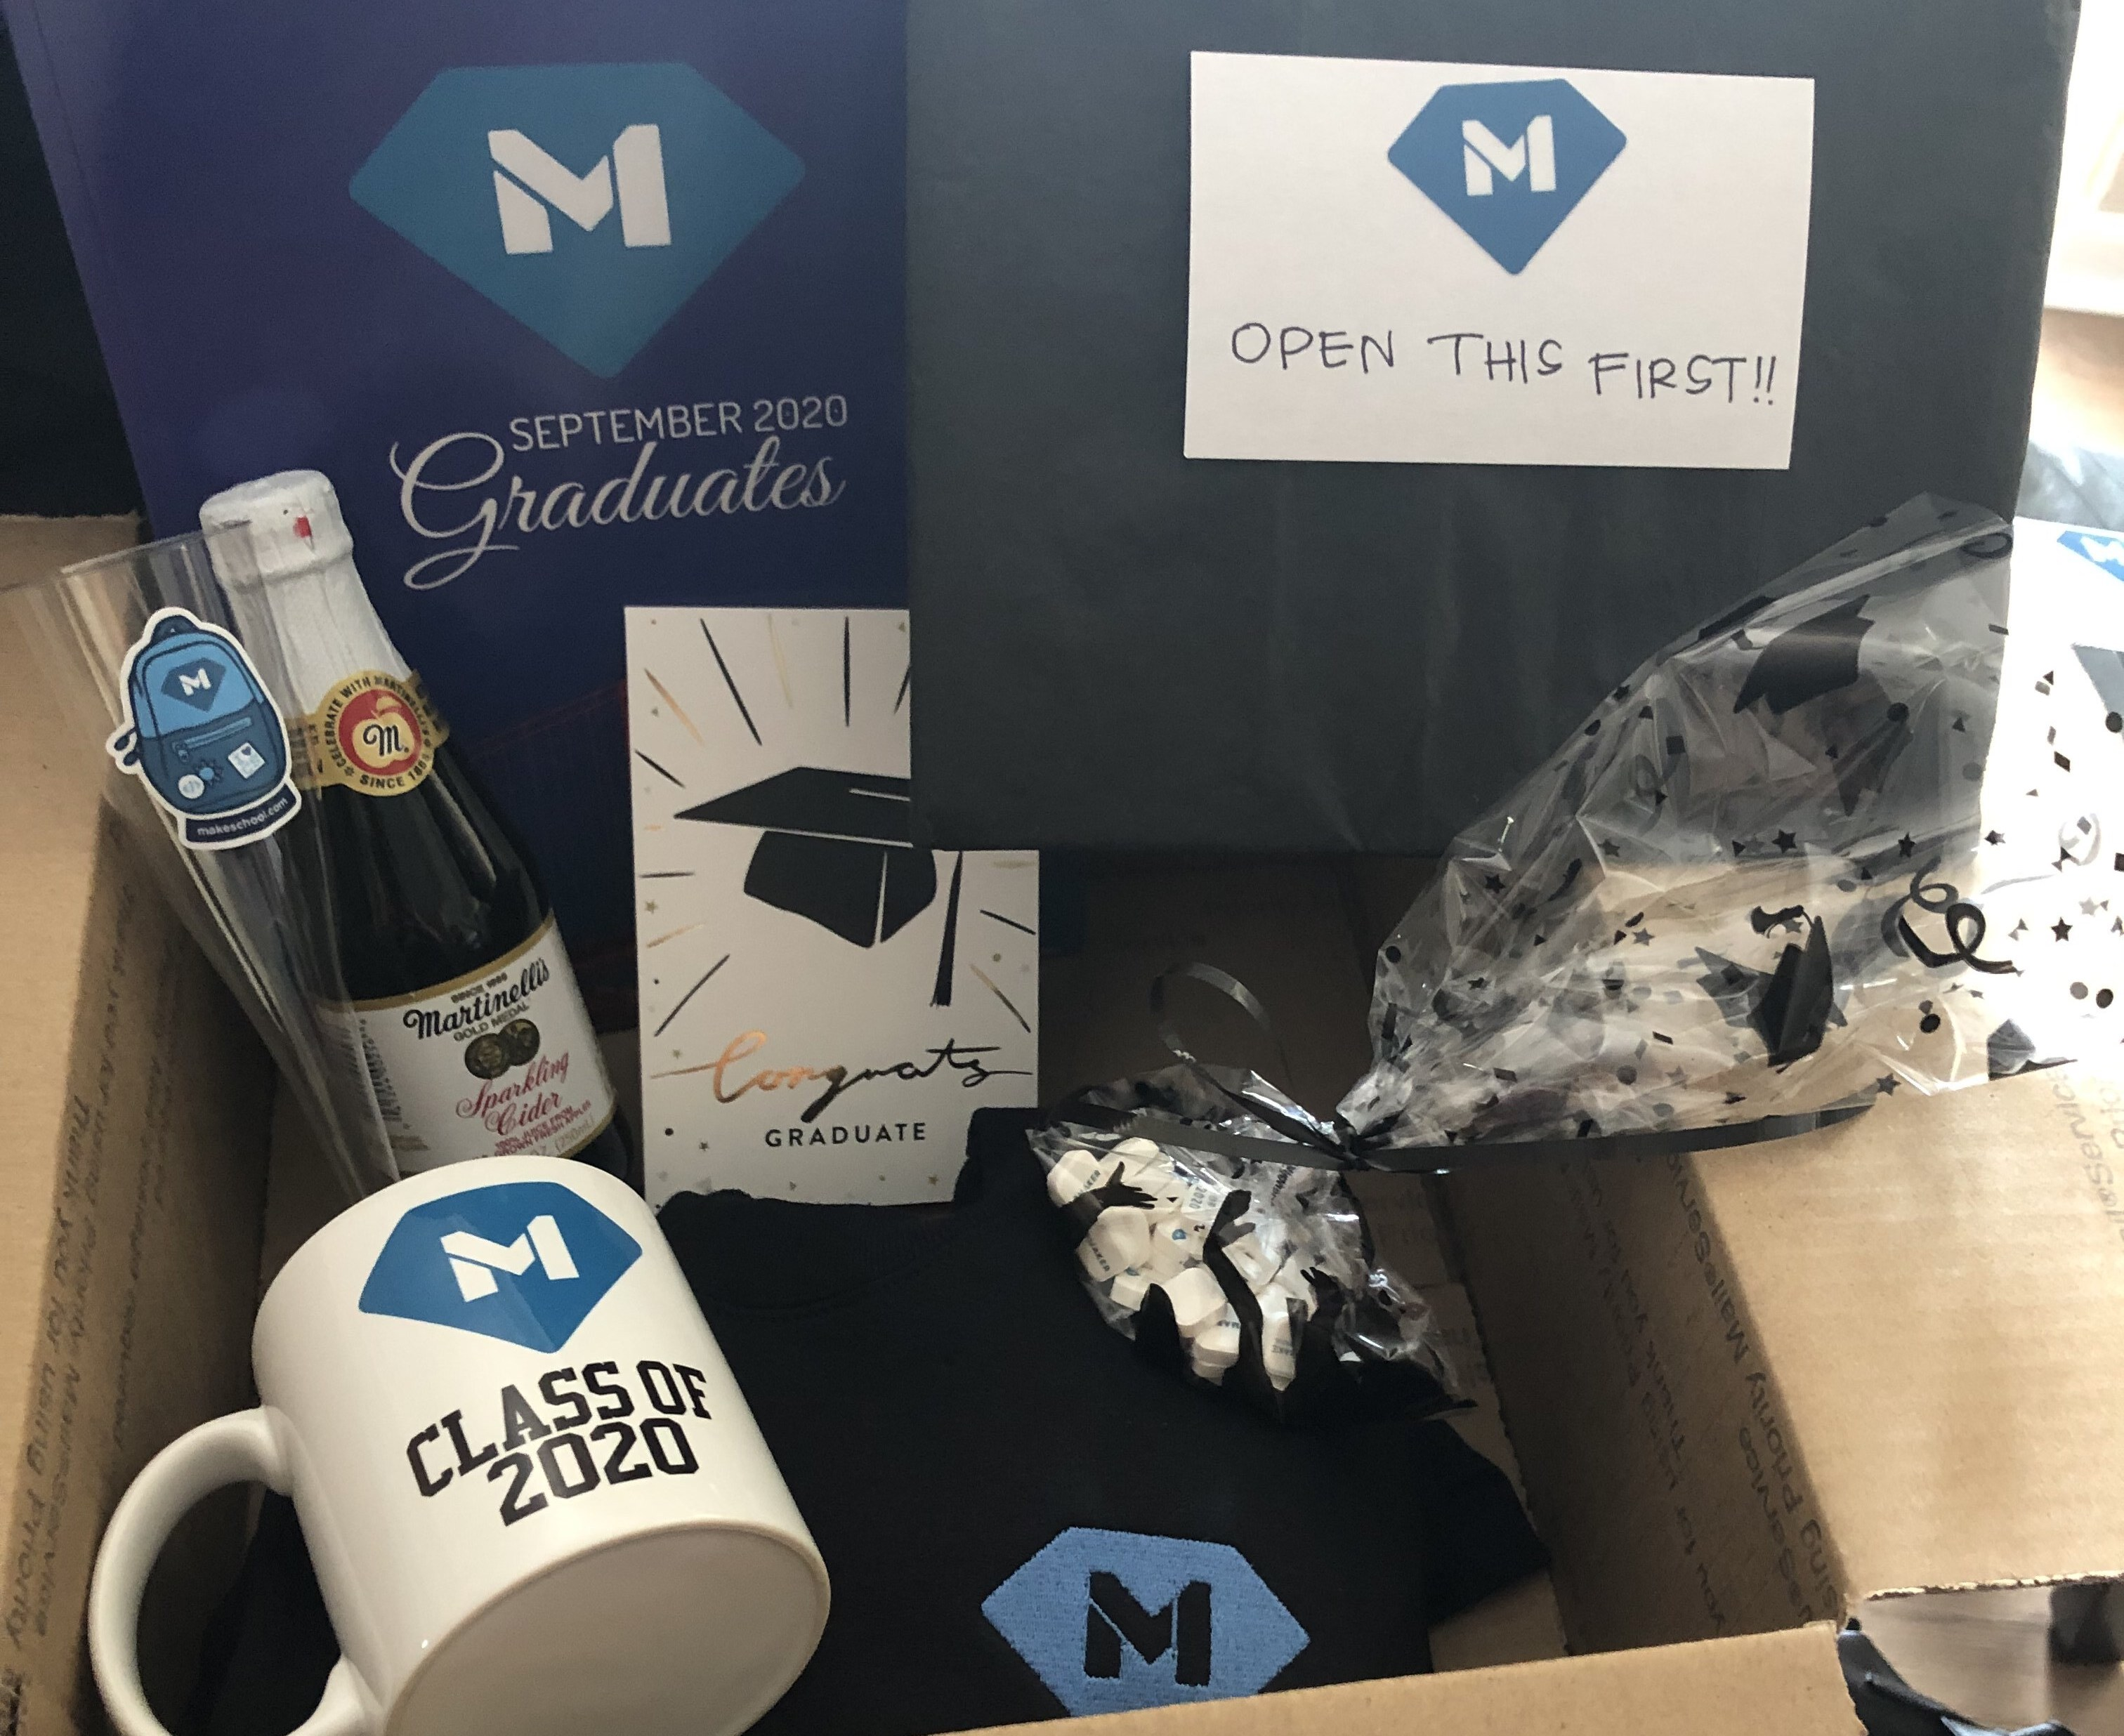 Image of the gift from Make School to each graduate